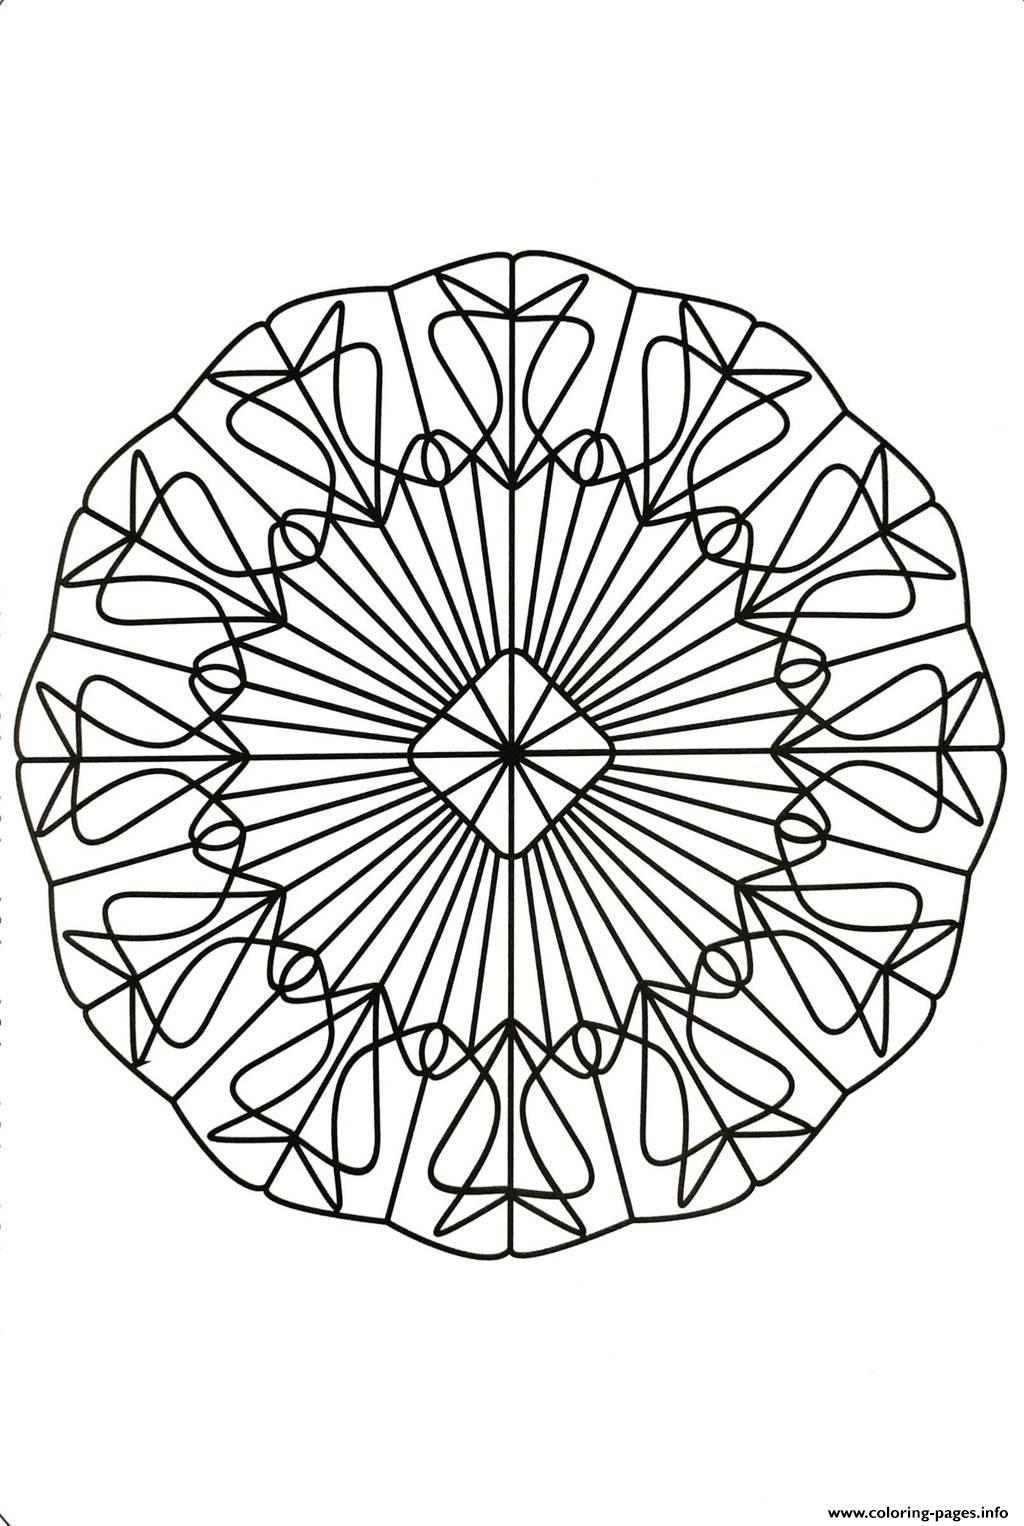 Mandalas To Download For Free 27  coloring pages